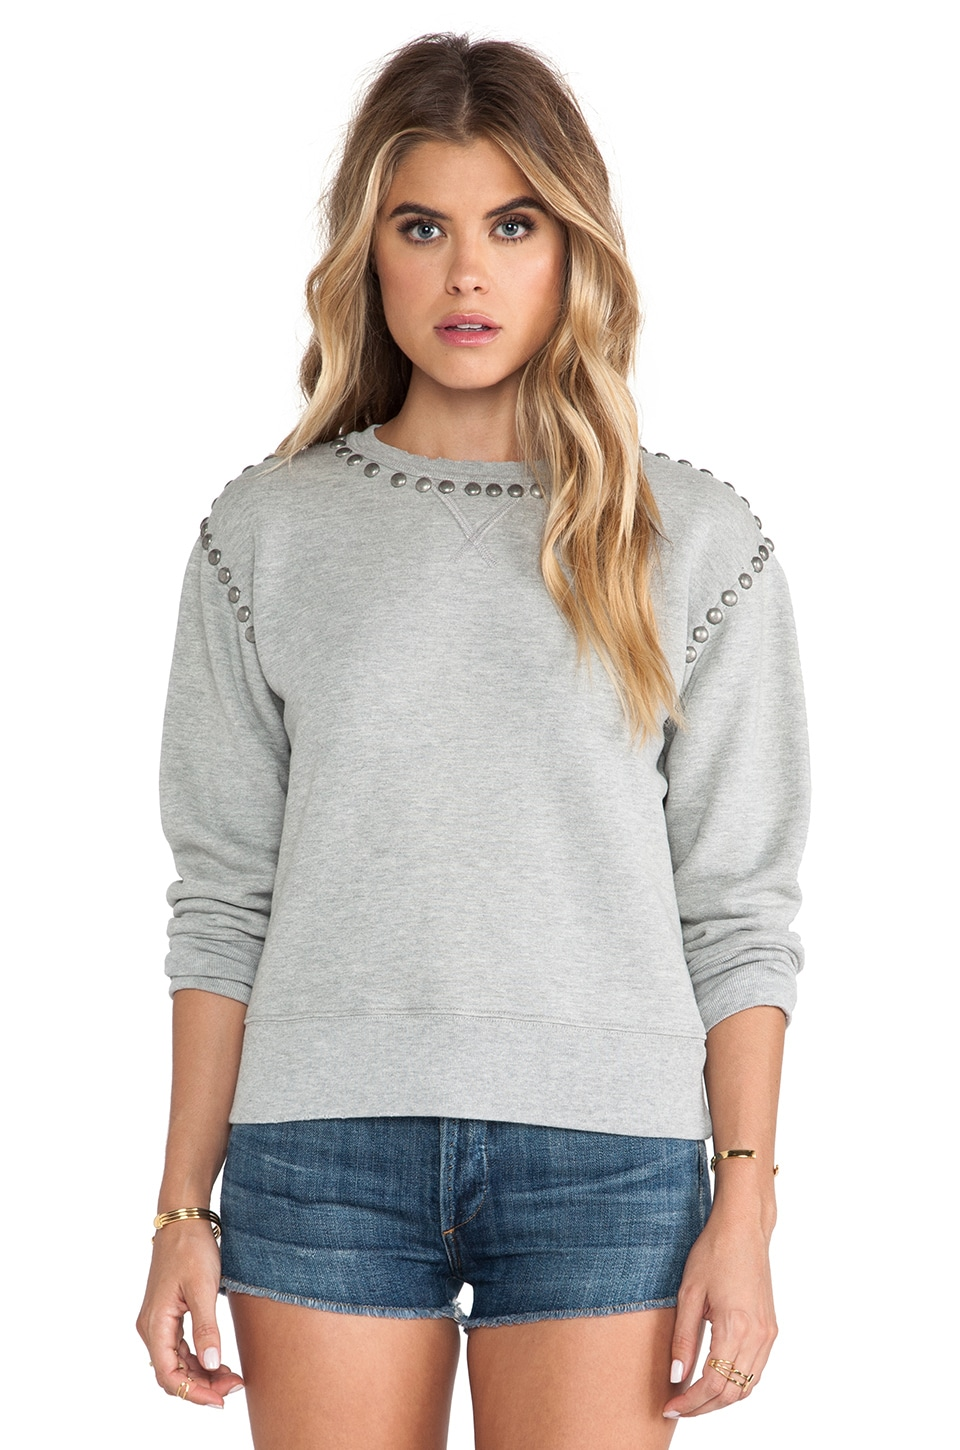 Citizens of Humanity Premium Vintage Camryn Sweatshirt in Studded Heather